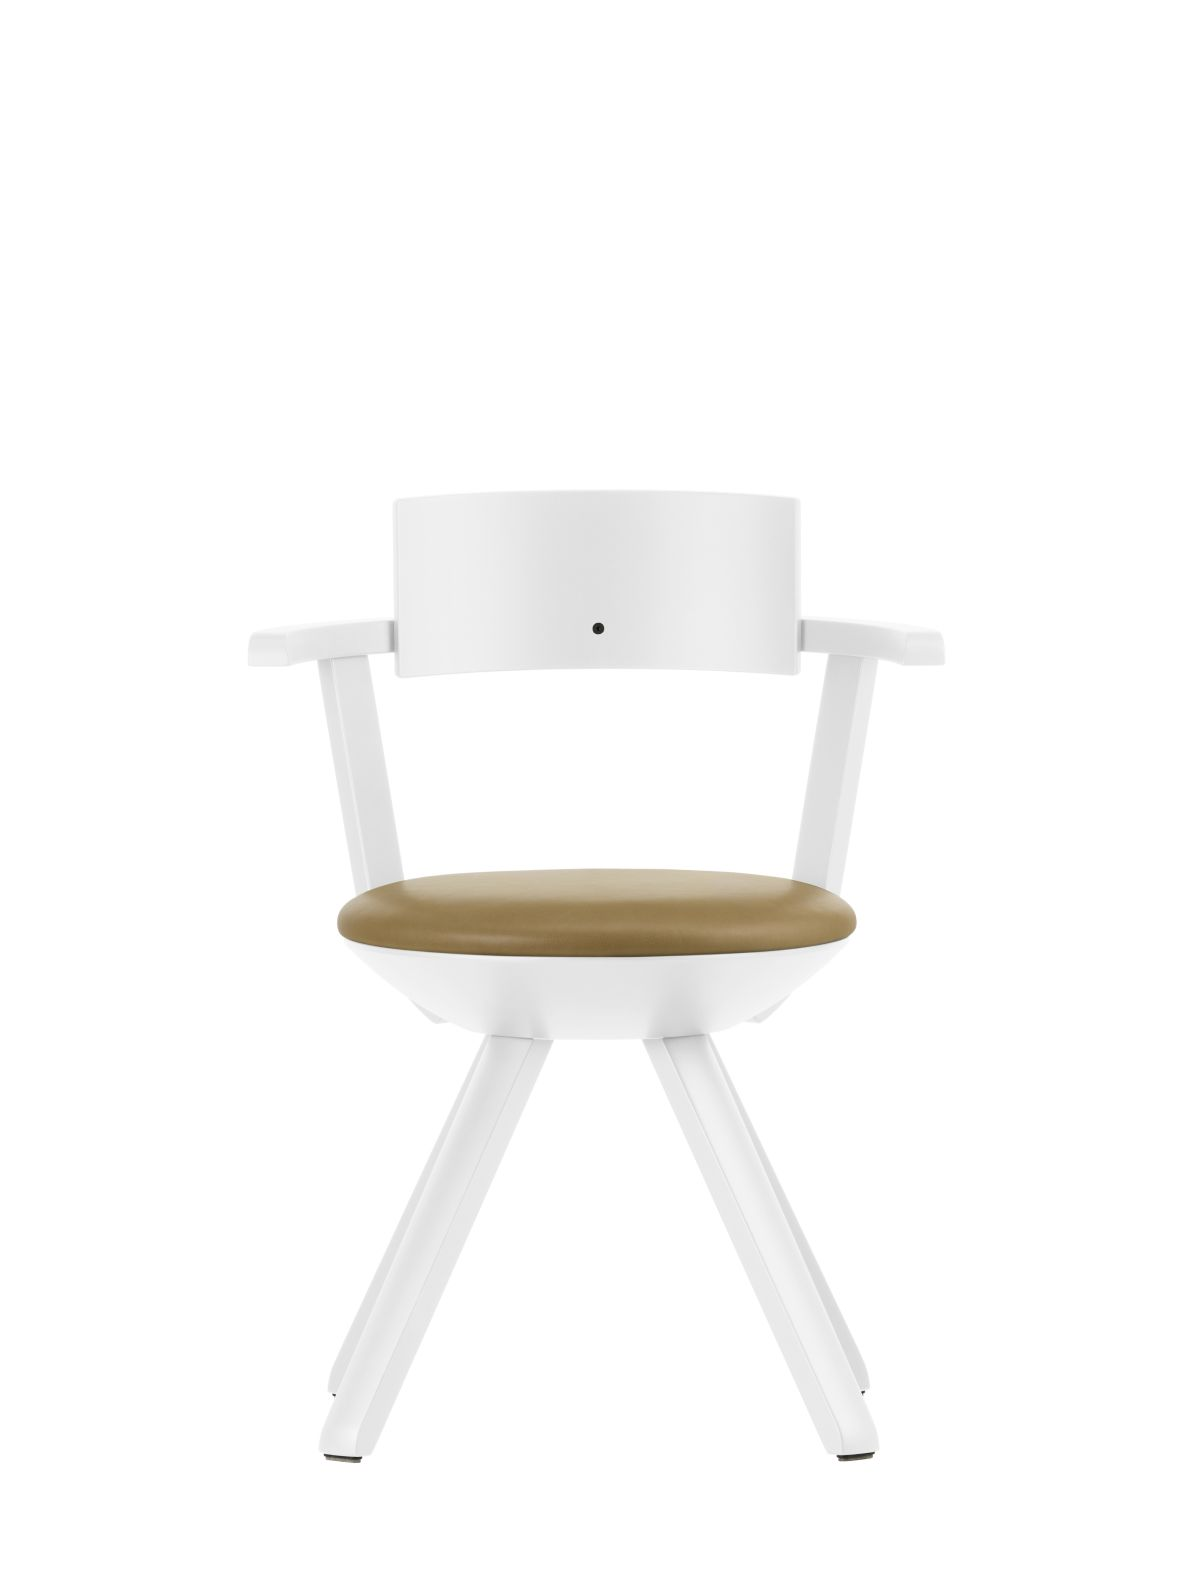 Rival Chair KG002 Legs and backrest white lacquered seat upholstery leather Natural caramel